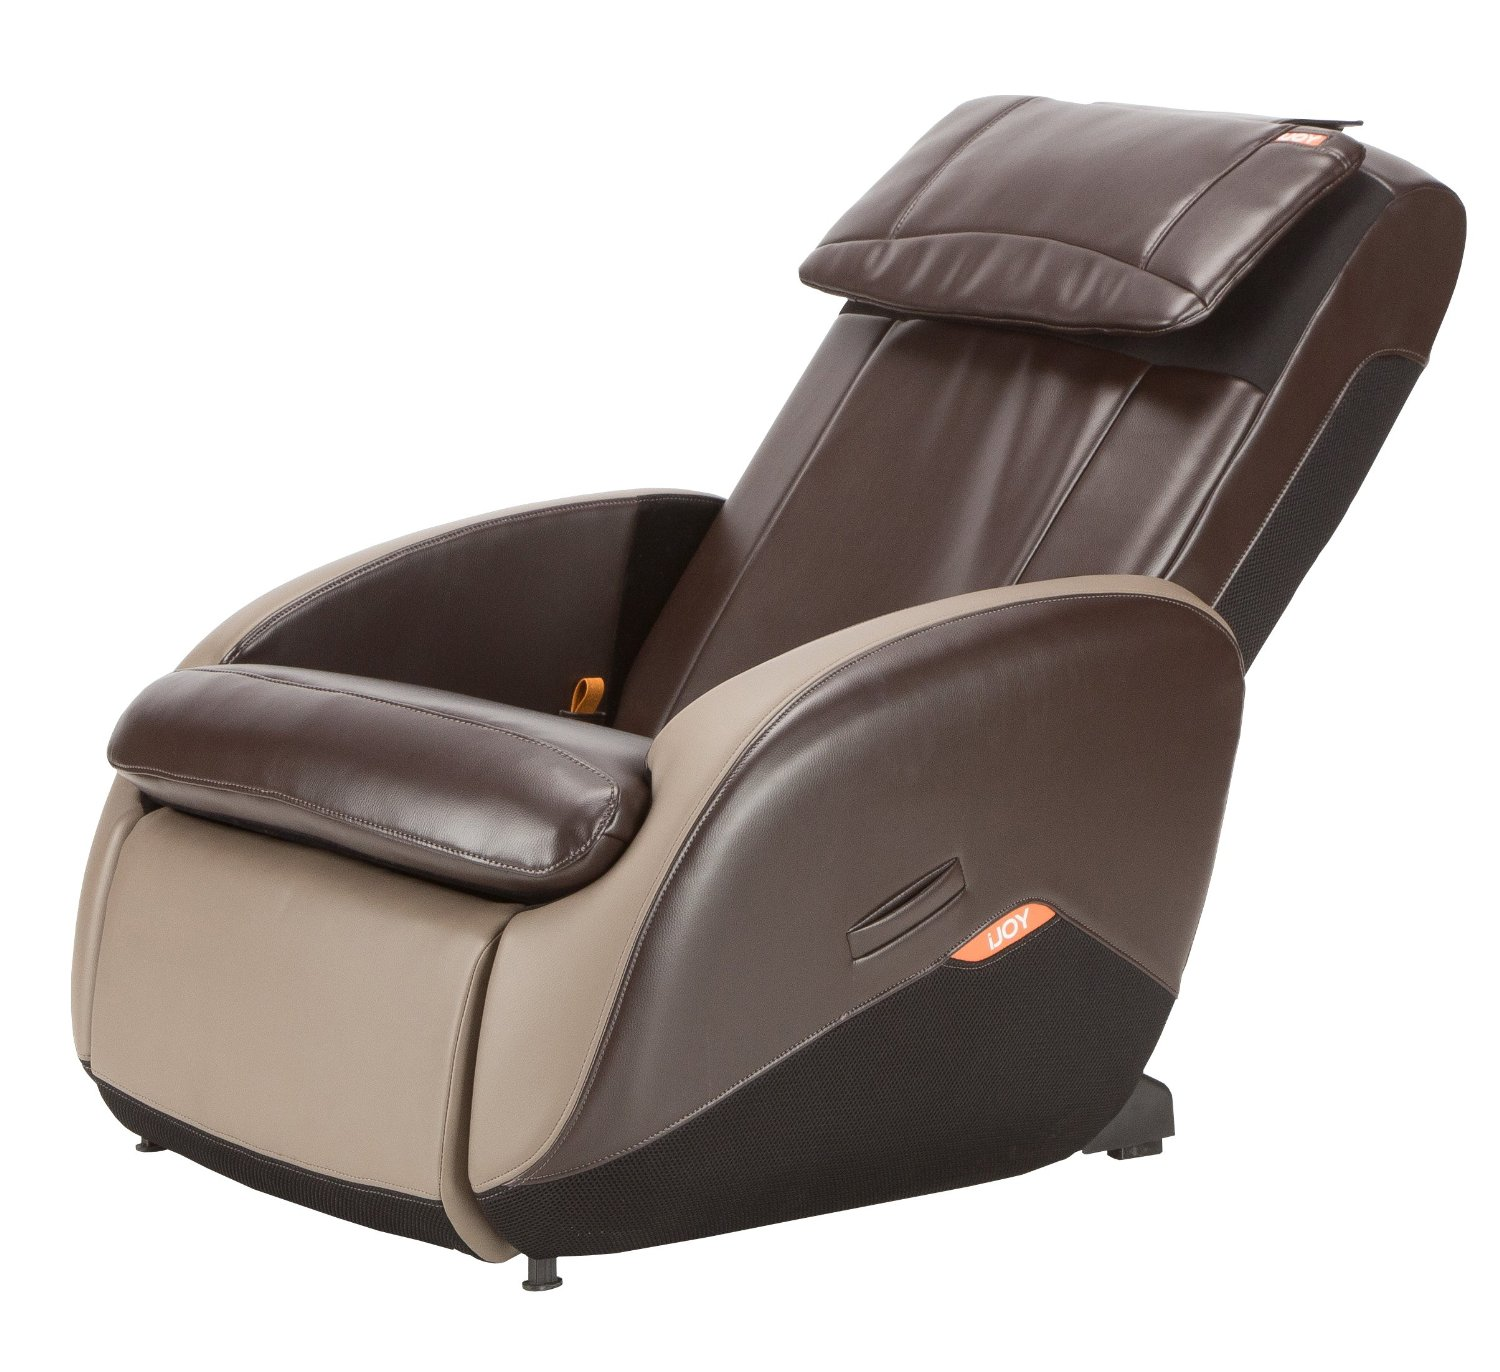 HT iJoy Active Massage Chair